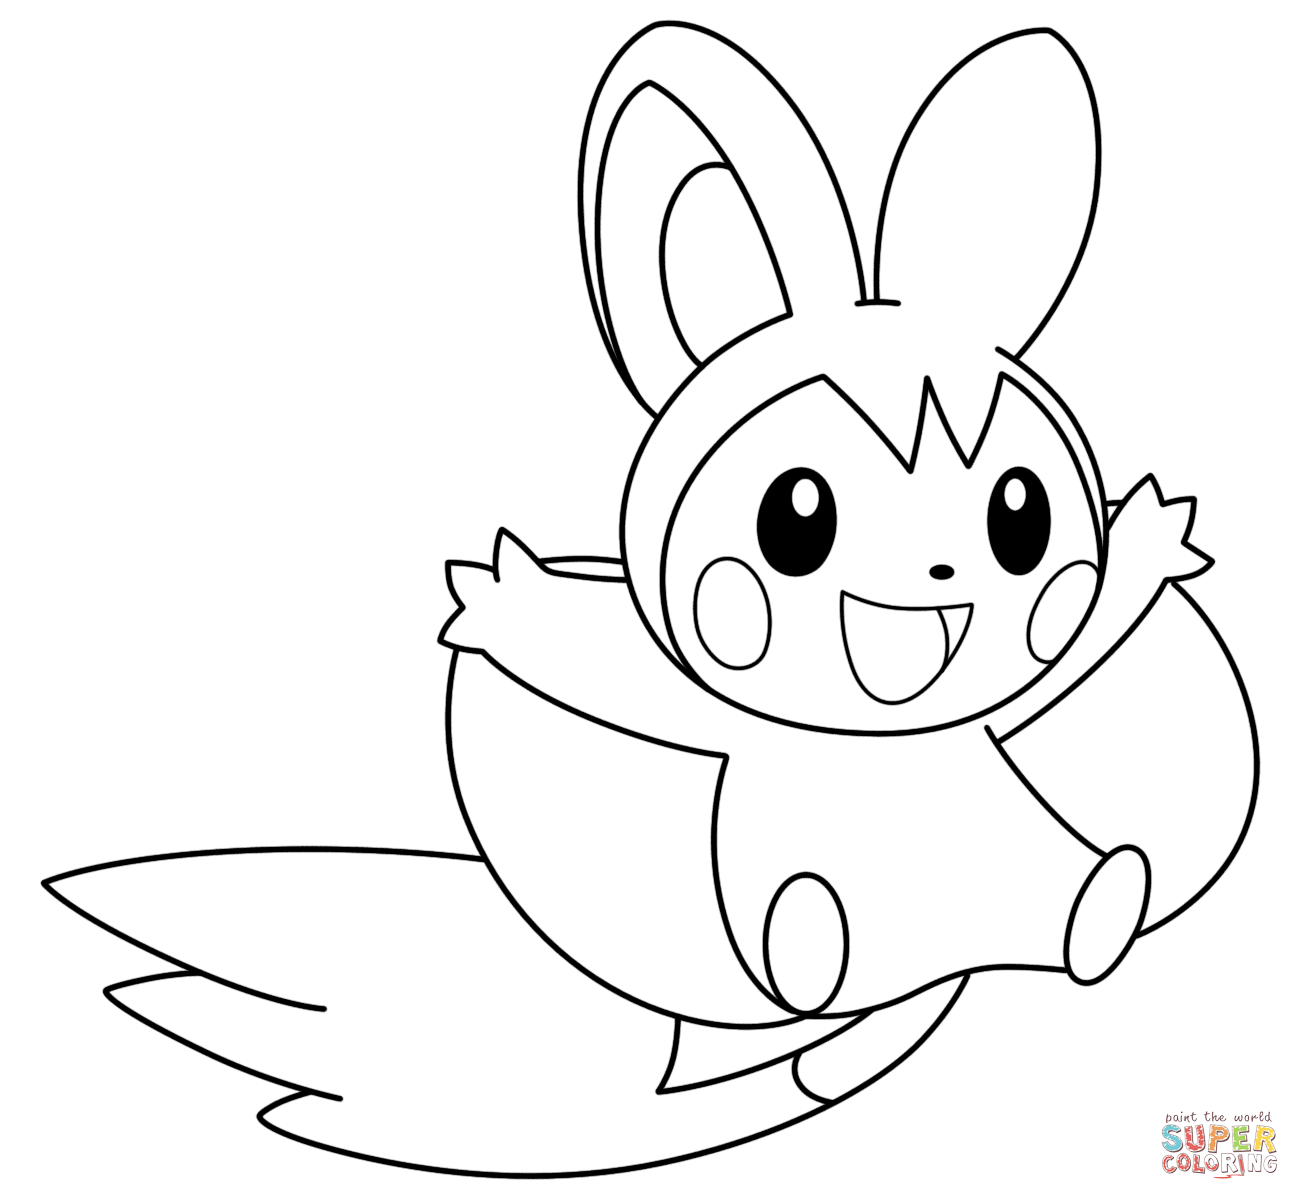 Appalling Coloring Pages Pokemon Printable In Sweet Pokemon